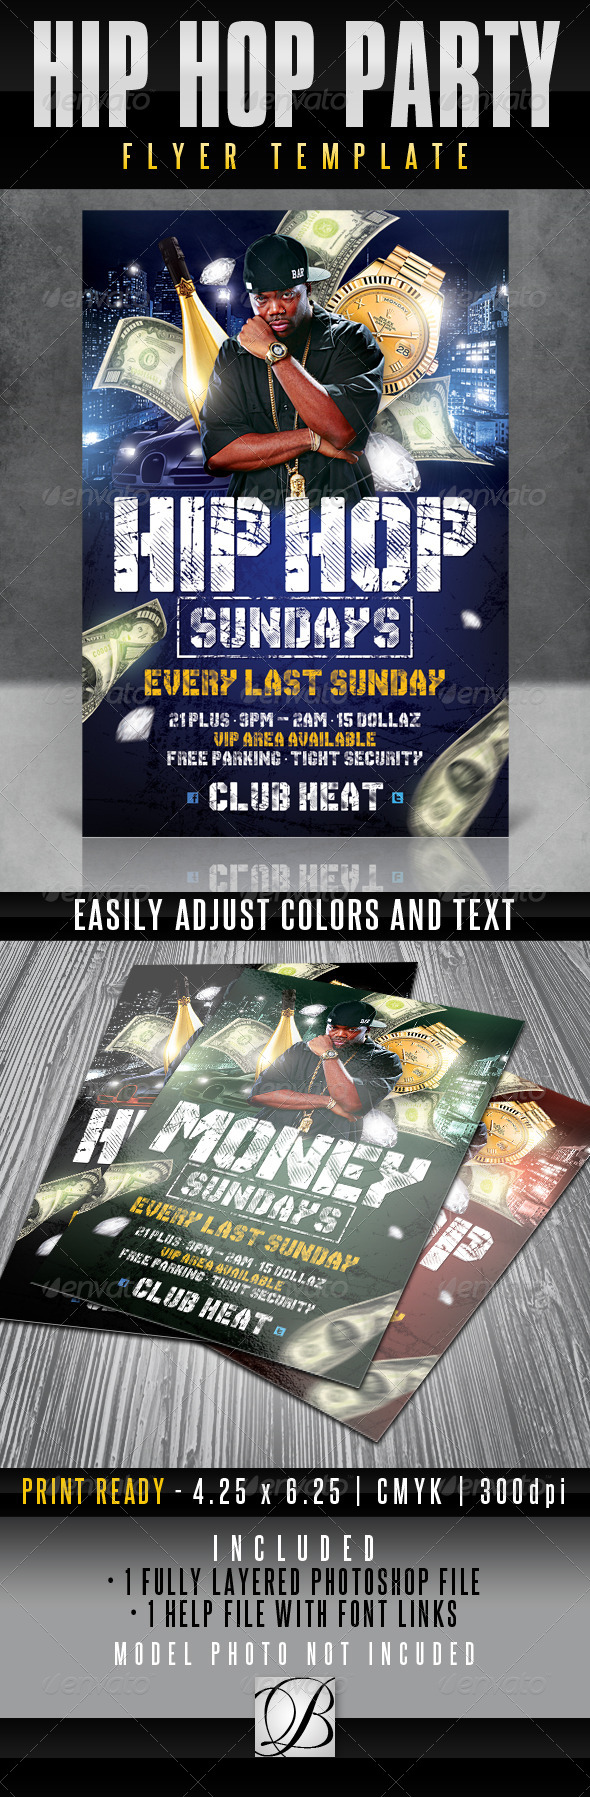 GraphicRiver Hip Hop Party Flyer Template 4781648